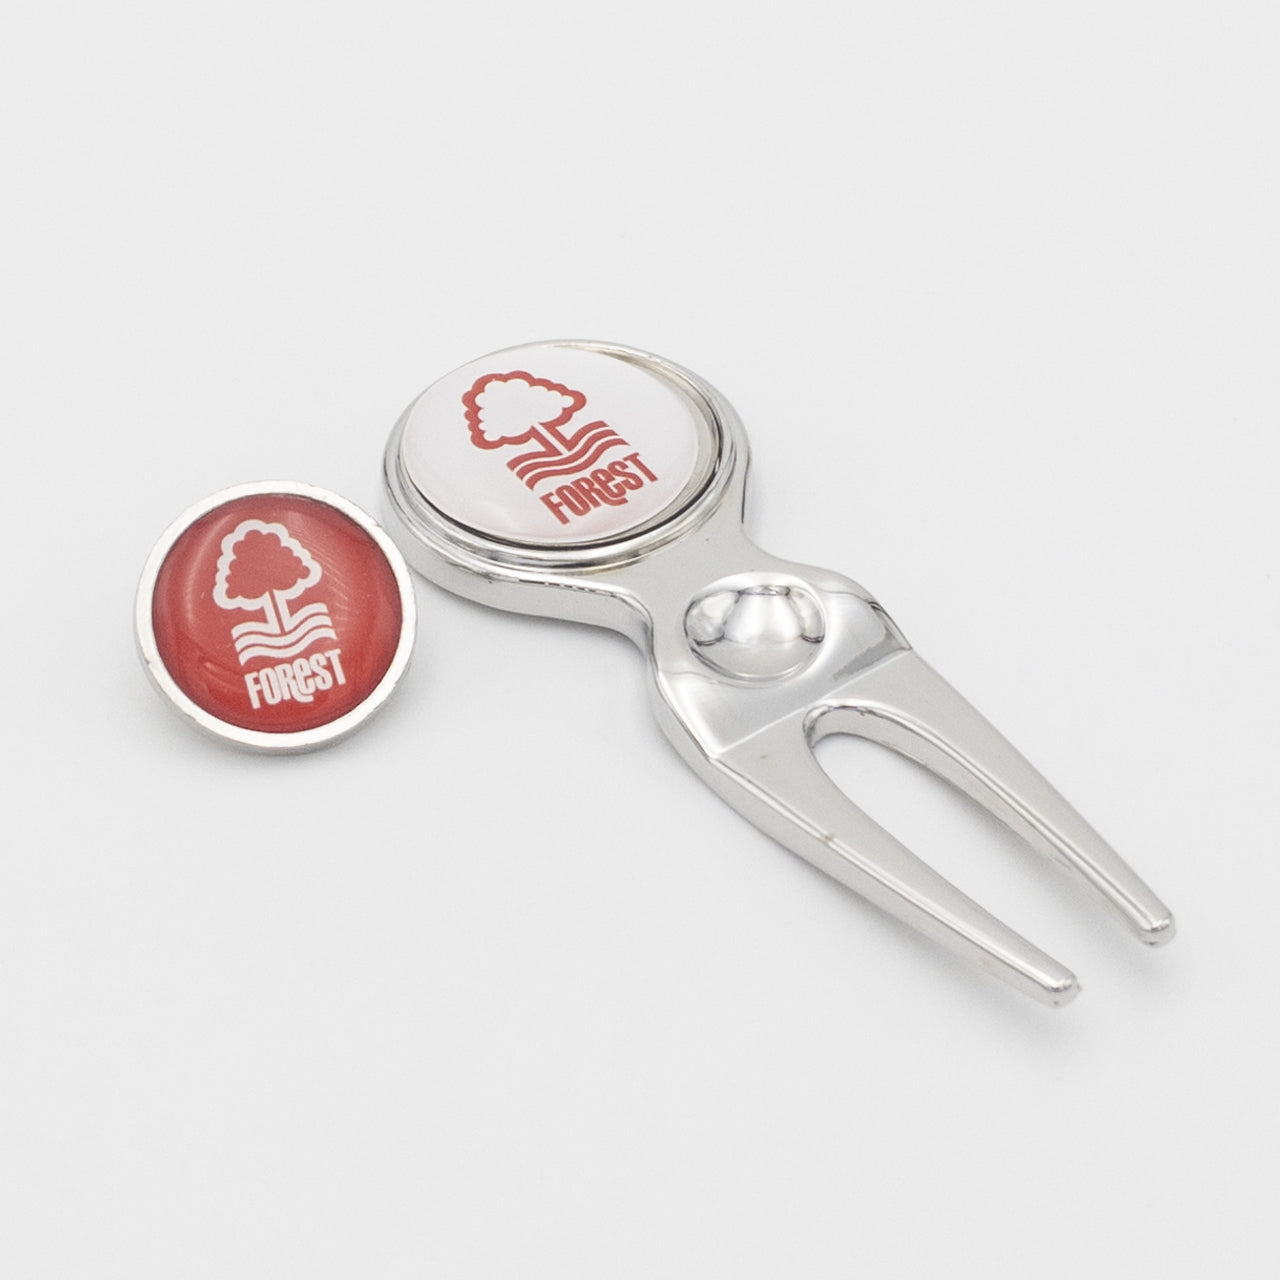 NFFC Magnetic Pitch Repairer and Ball Marker Set